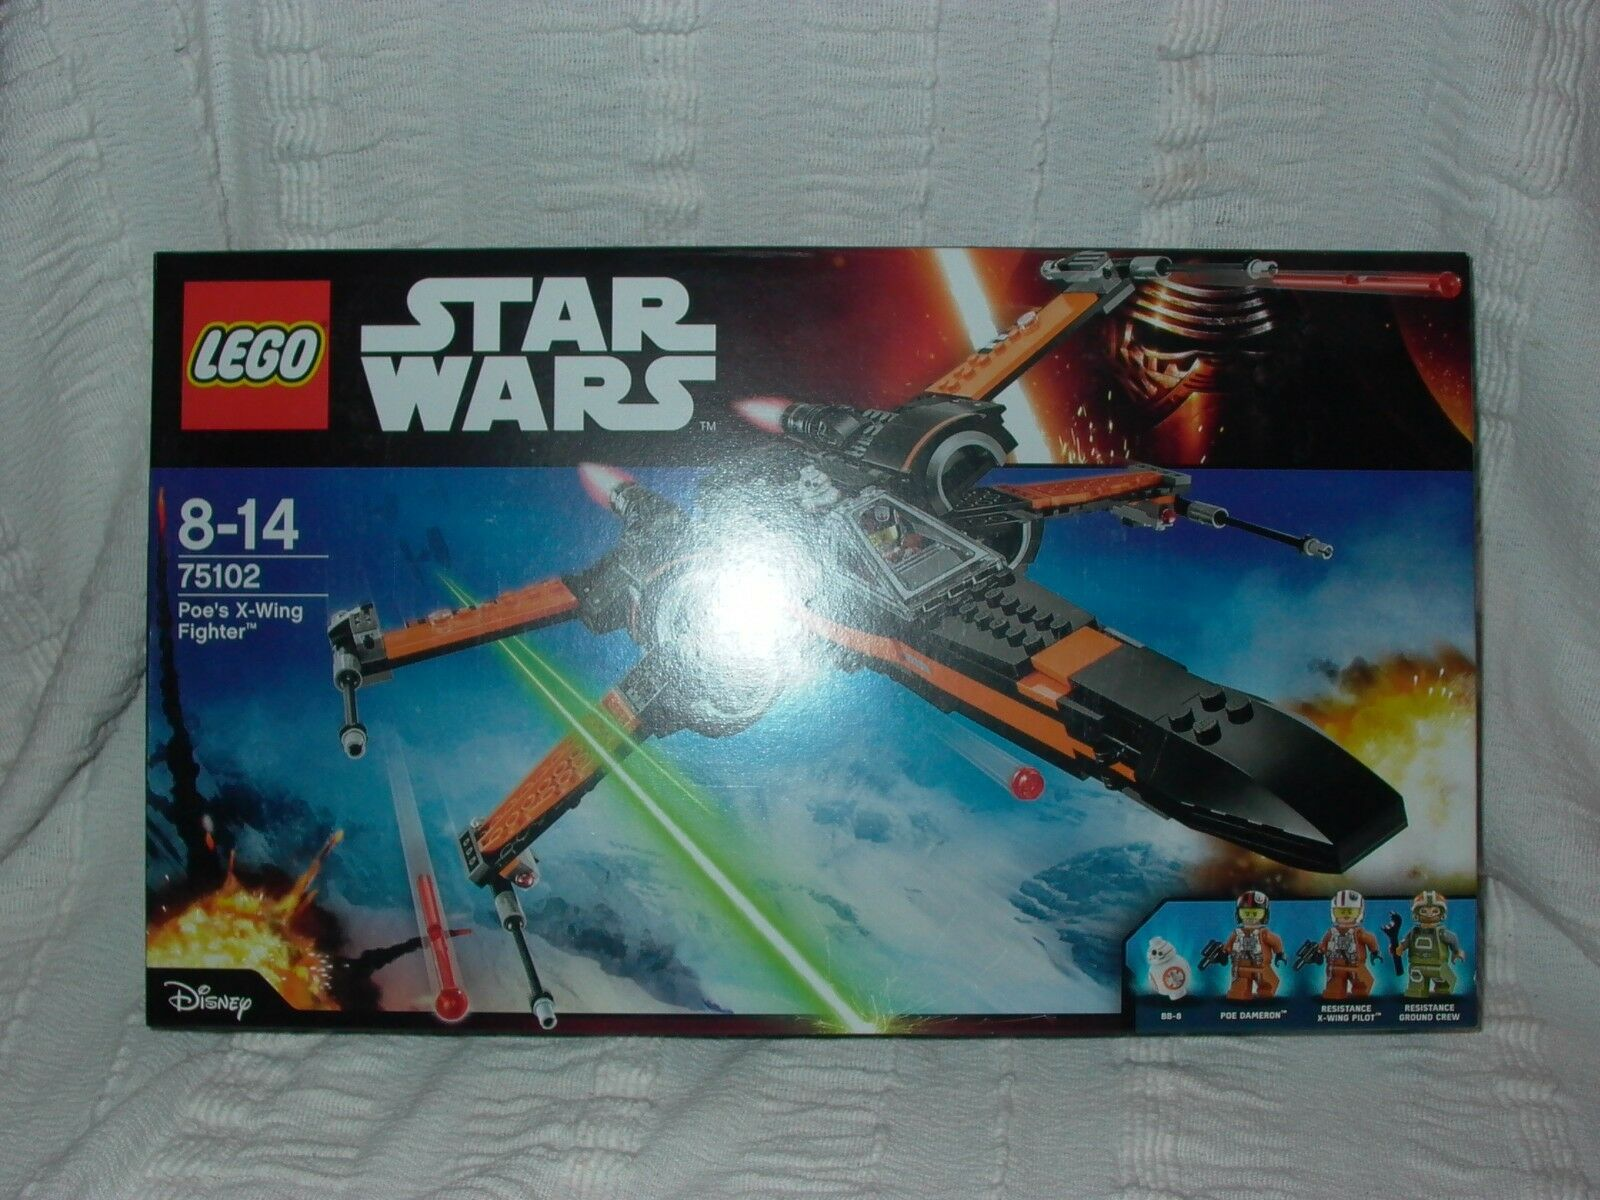 Lego 75102 Star Wars Ep7 Force Awakens Poe's X-wing Fighter 717pcs unopened new